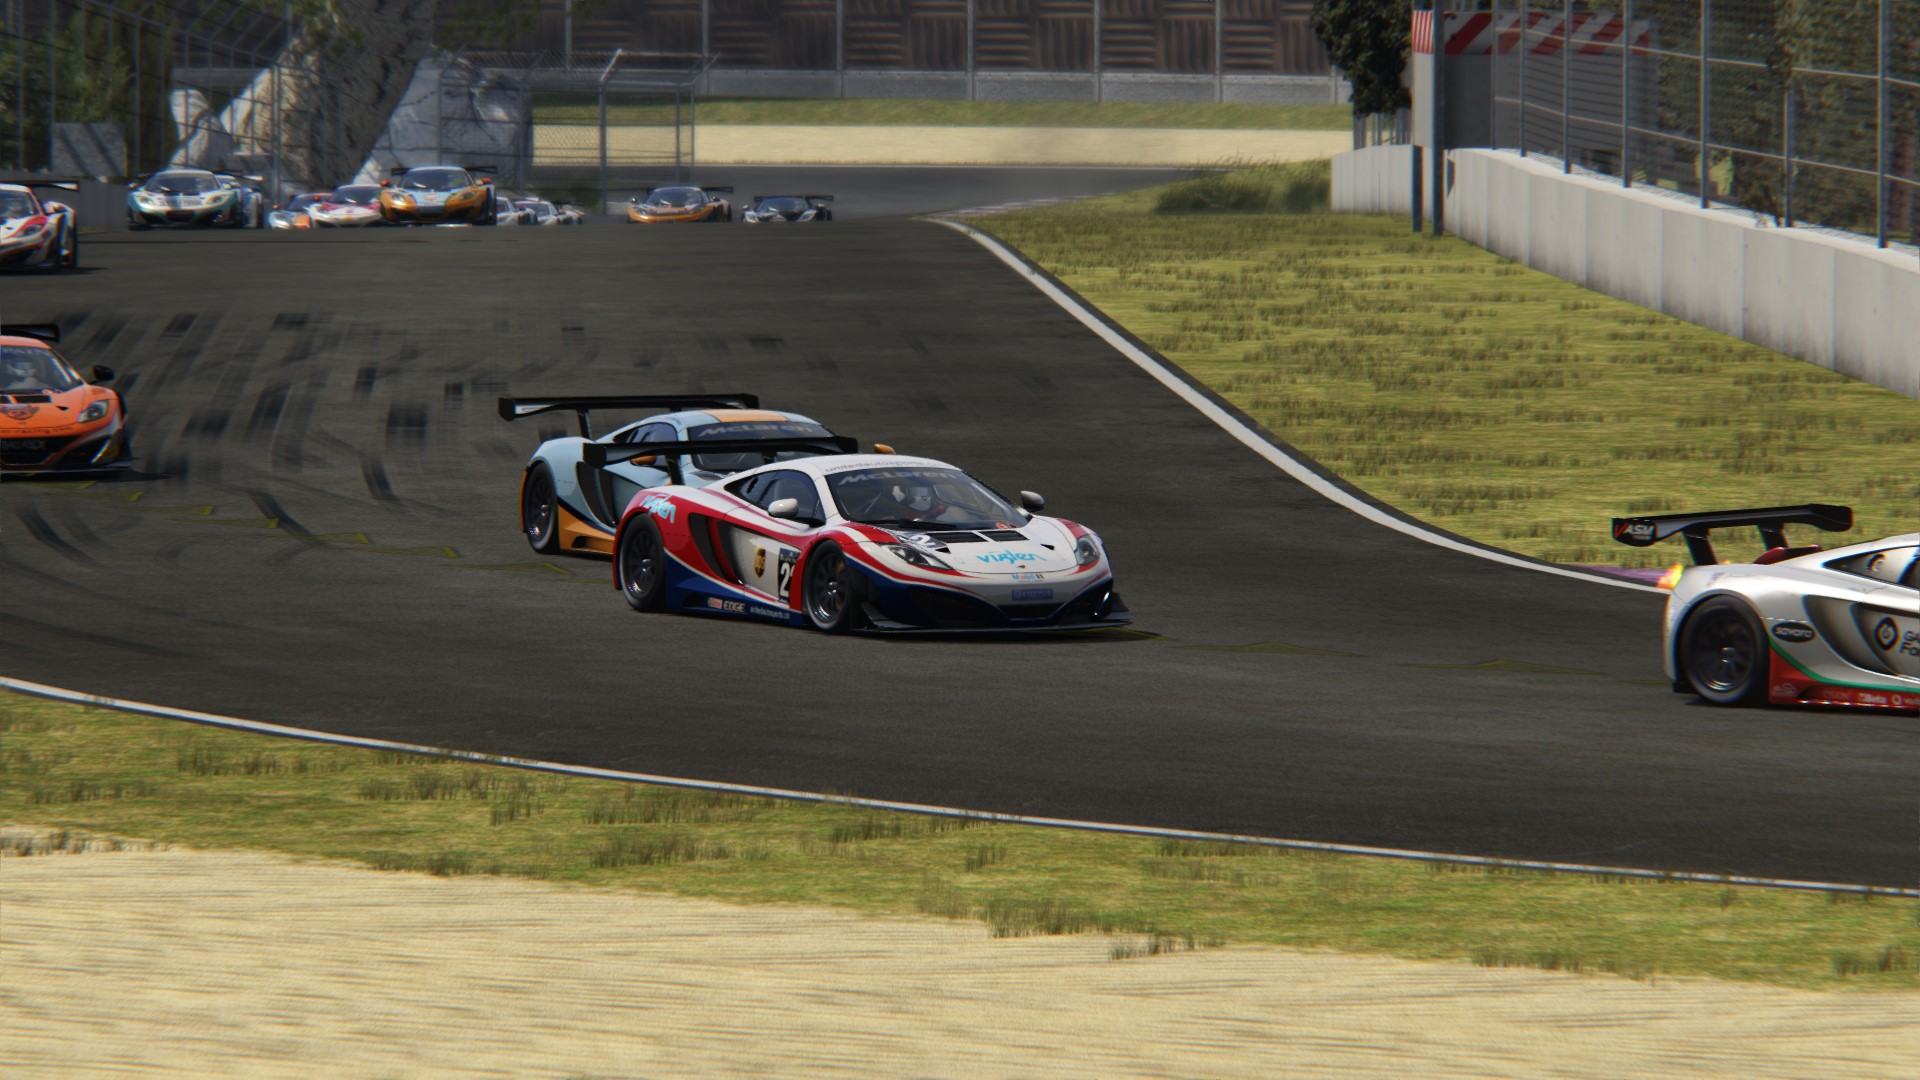 Screenshot_mclaren_mp412c_gt3_toscana_22-5-117-15-26-4.jpg